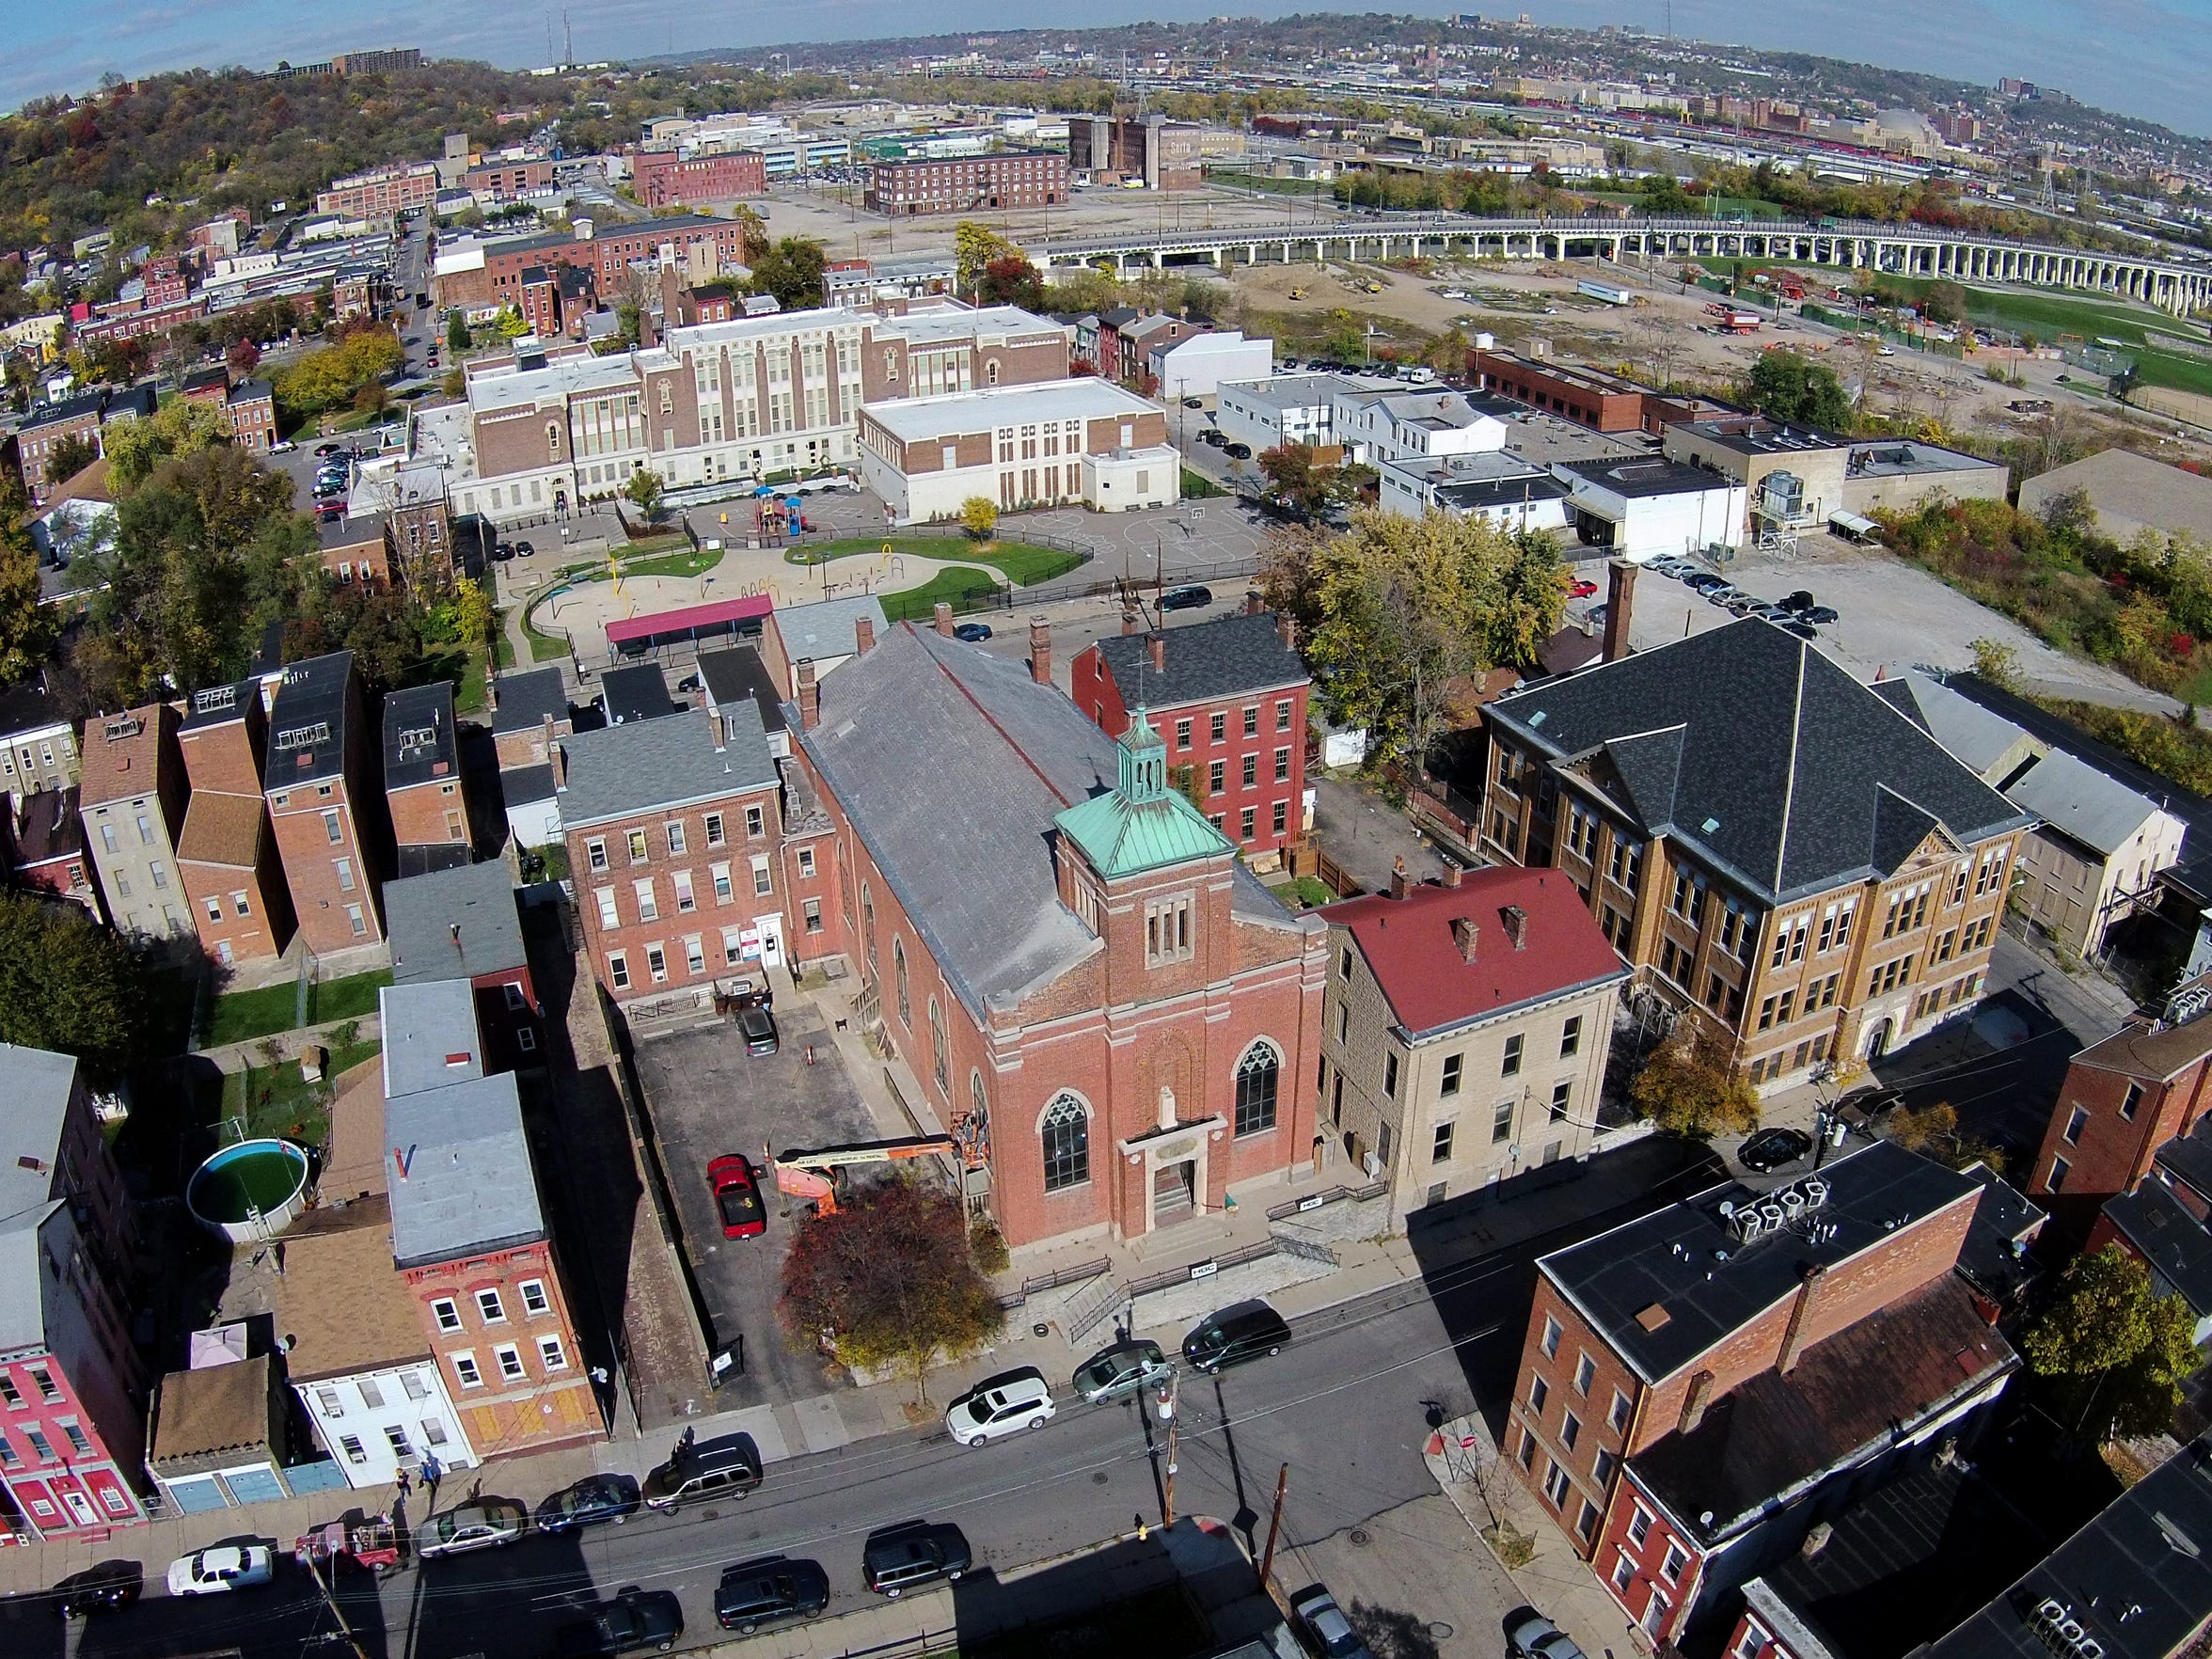 Lower Price Hill, in the foreground, is viewed from